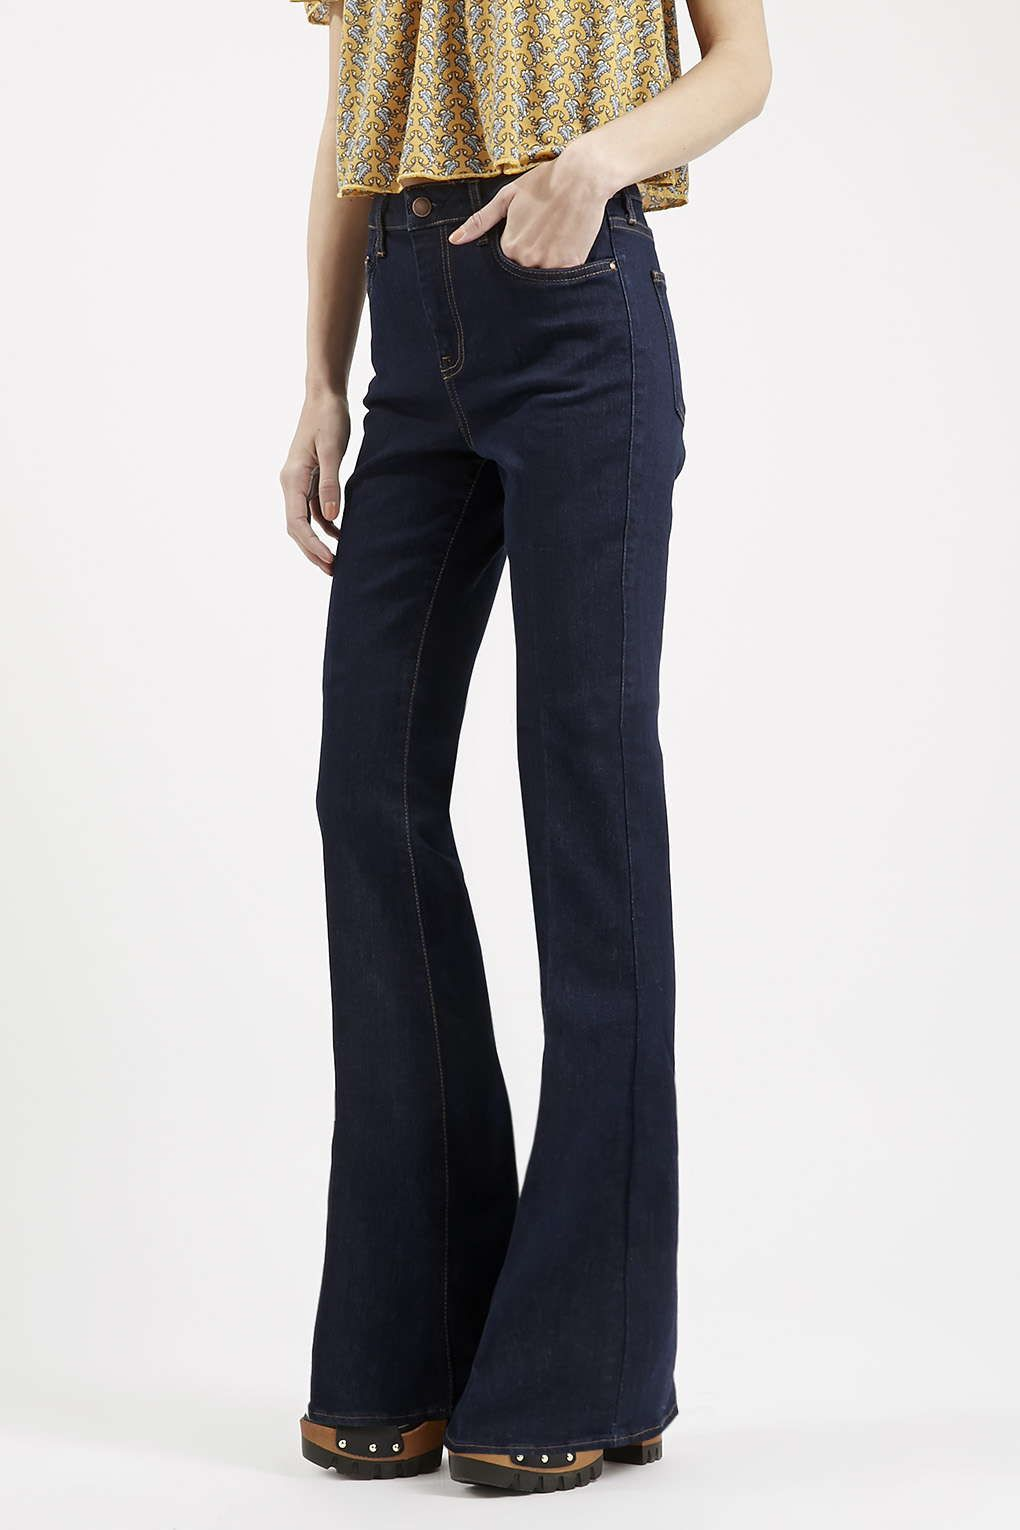 MOTO Clean-Cut Flared Jeans - Flared Jeans - Jeans - Clothing ...